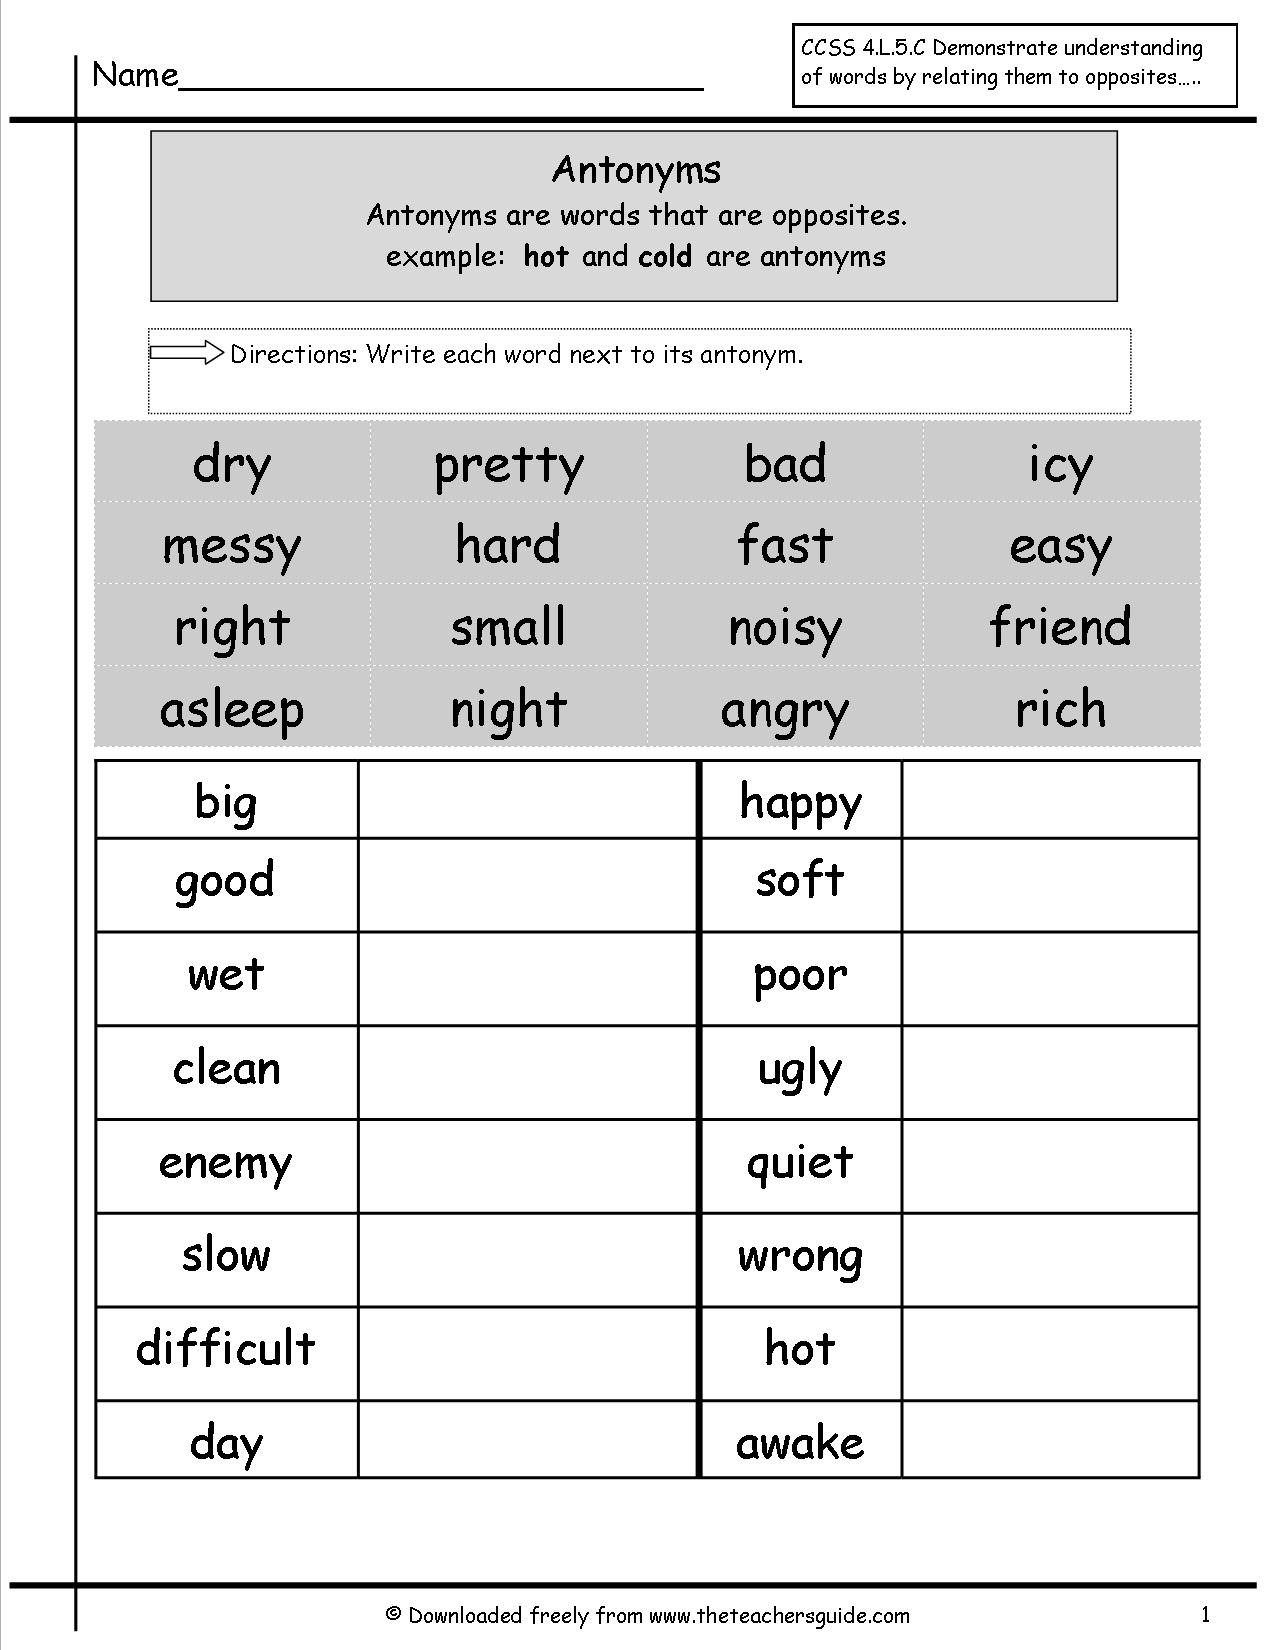 Antonyms Worksheets 3rd Grade Synonyms and Antonyms 4th Grade Lessons Tes Teach